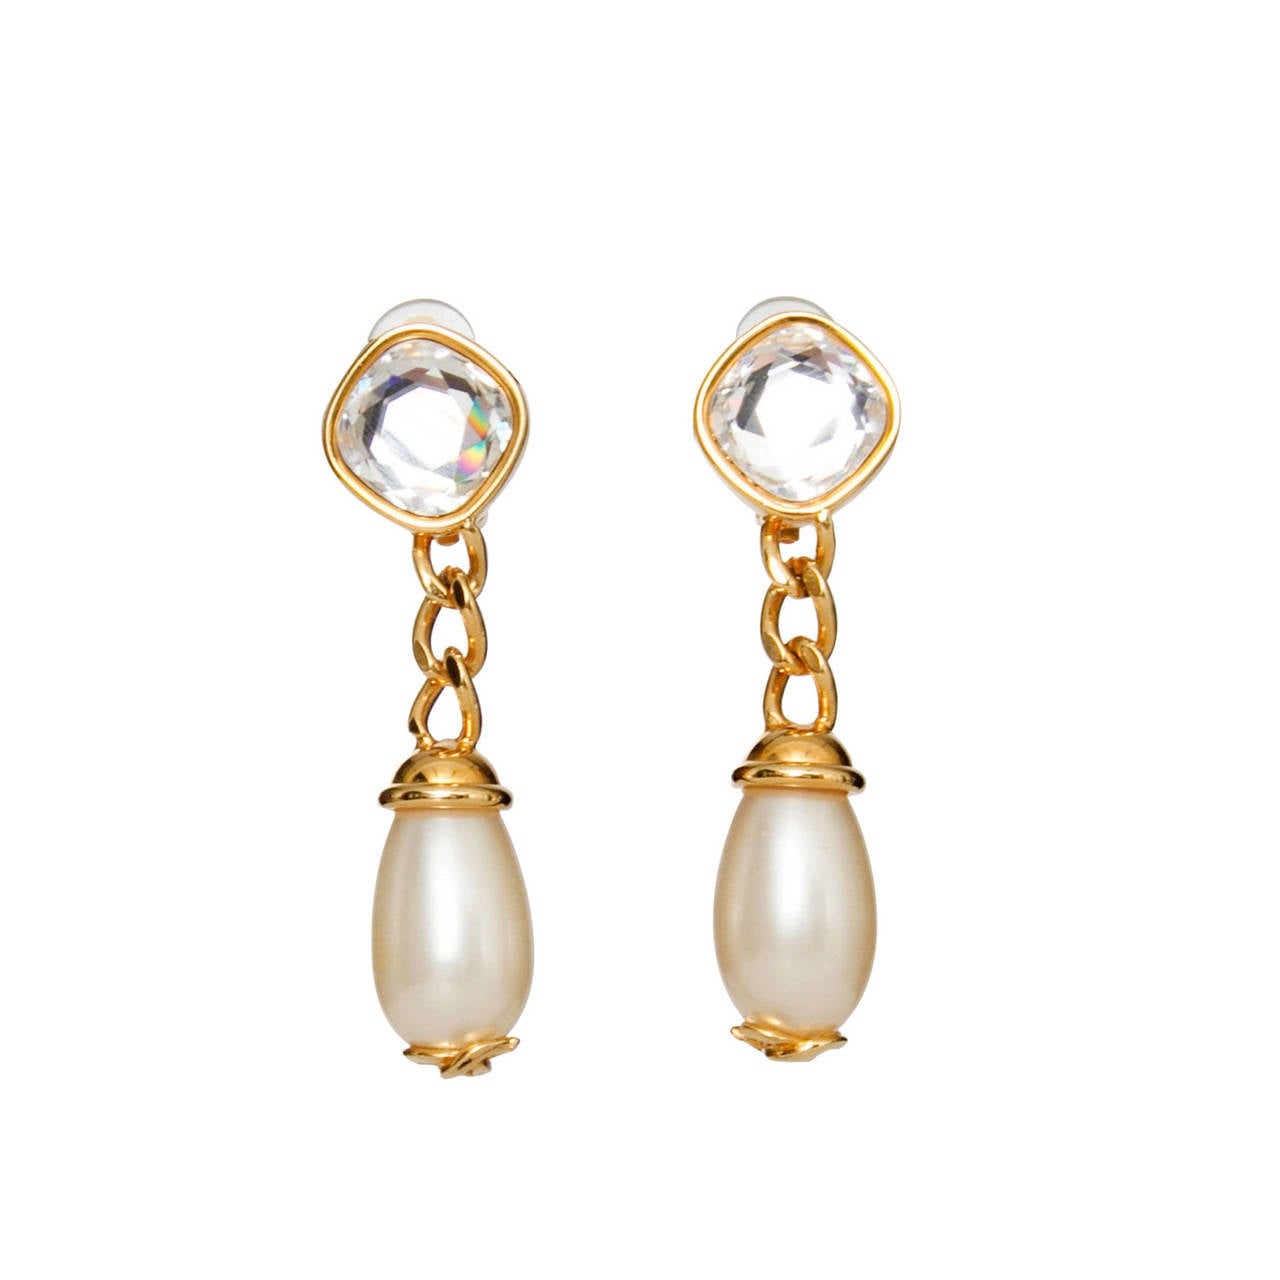 A Pair Of '97 Chanel Mother of Pearl Drop Earrings 1